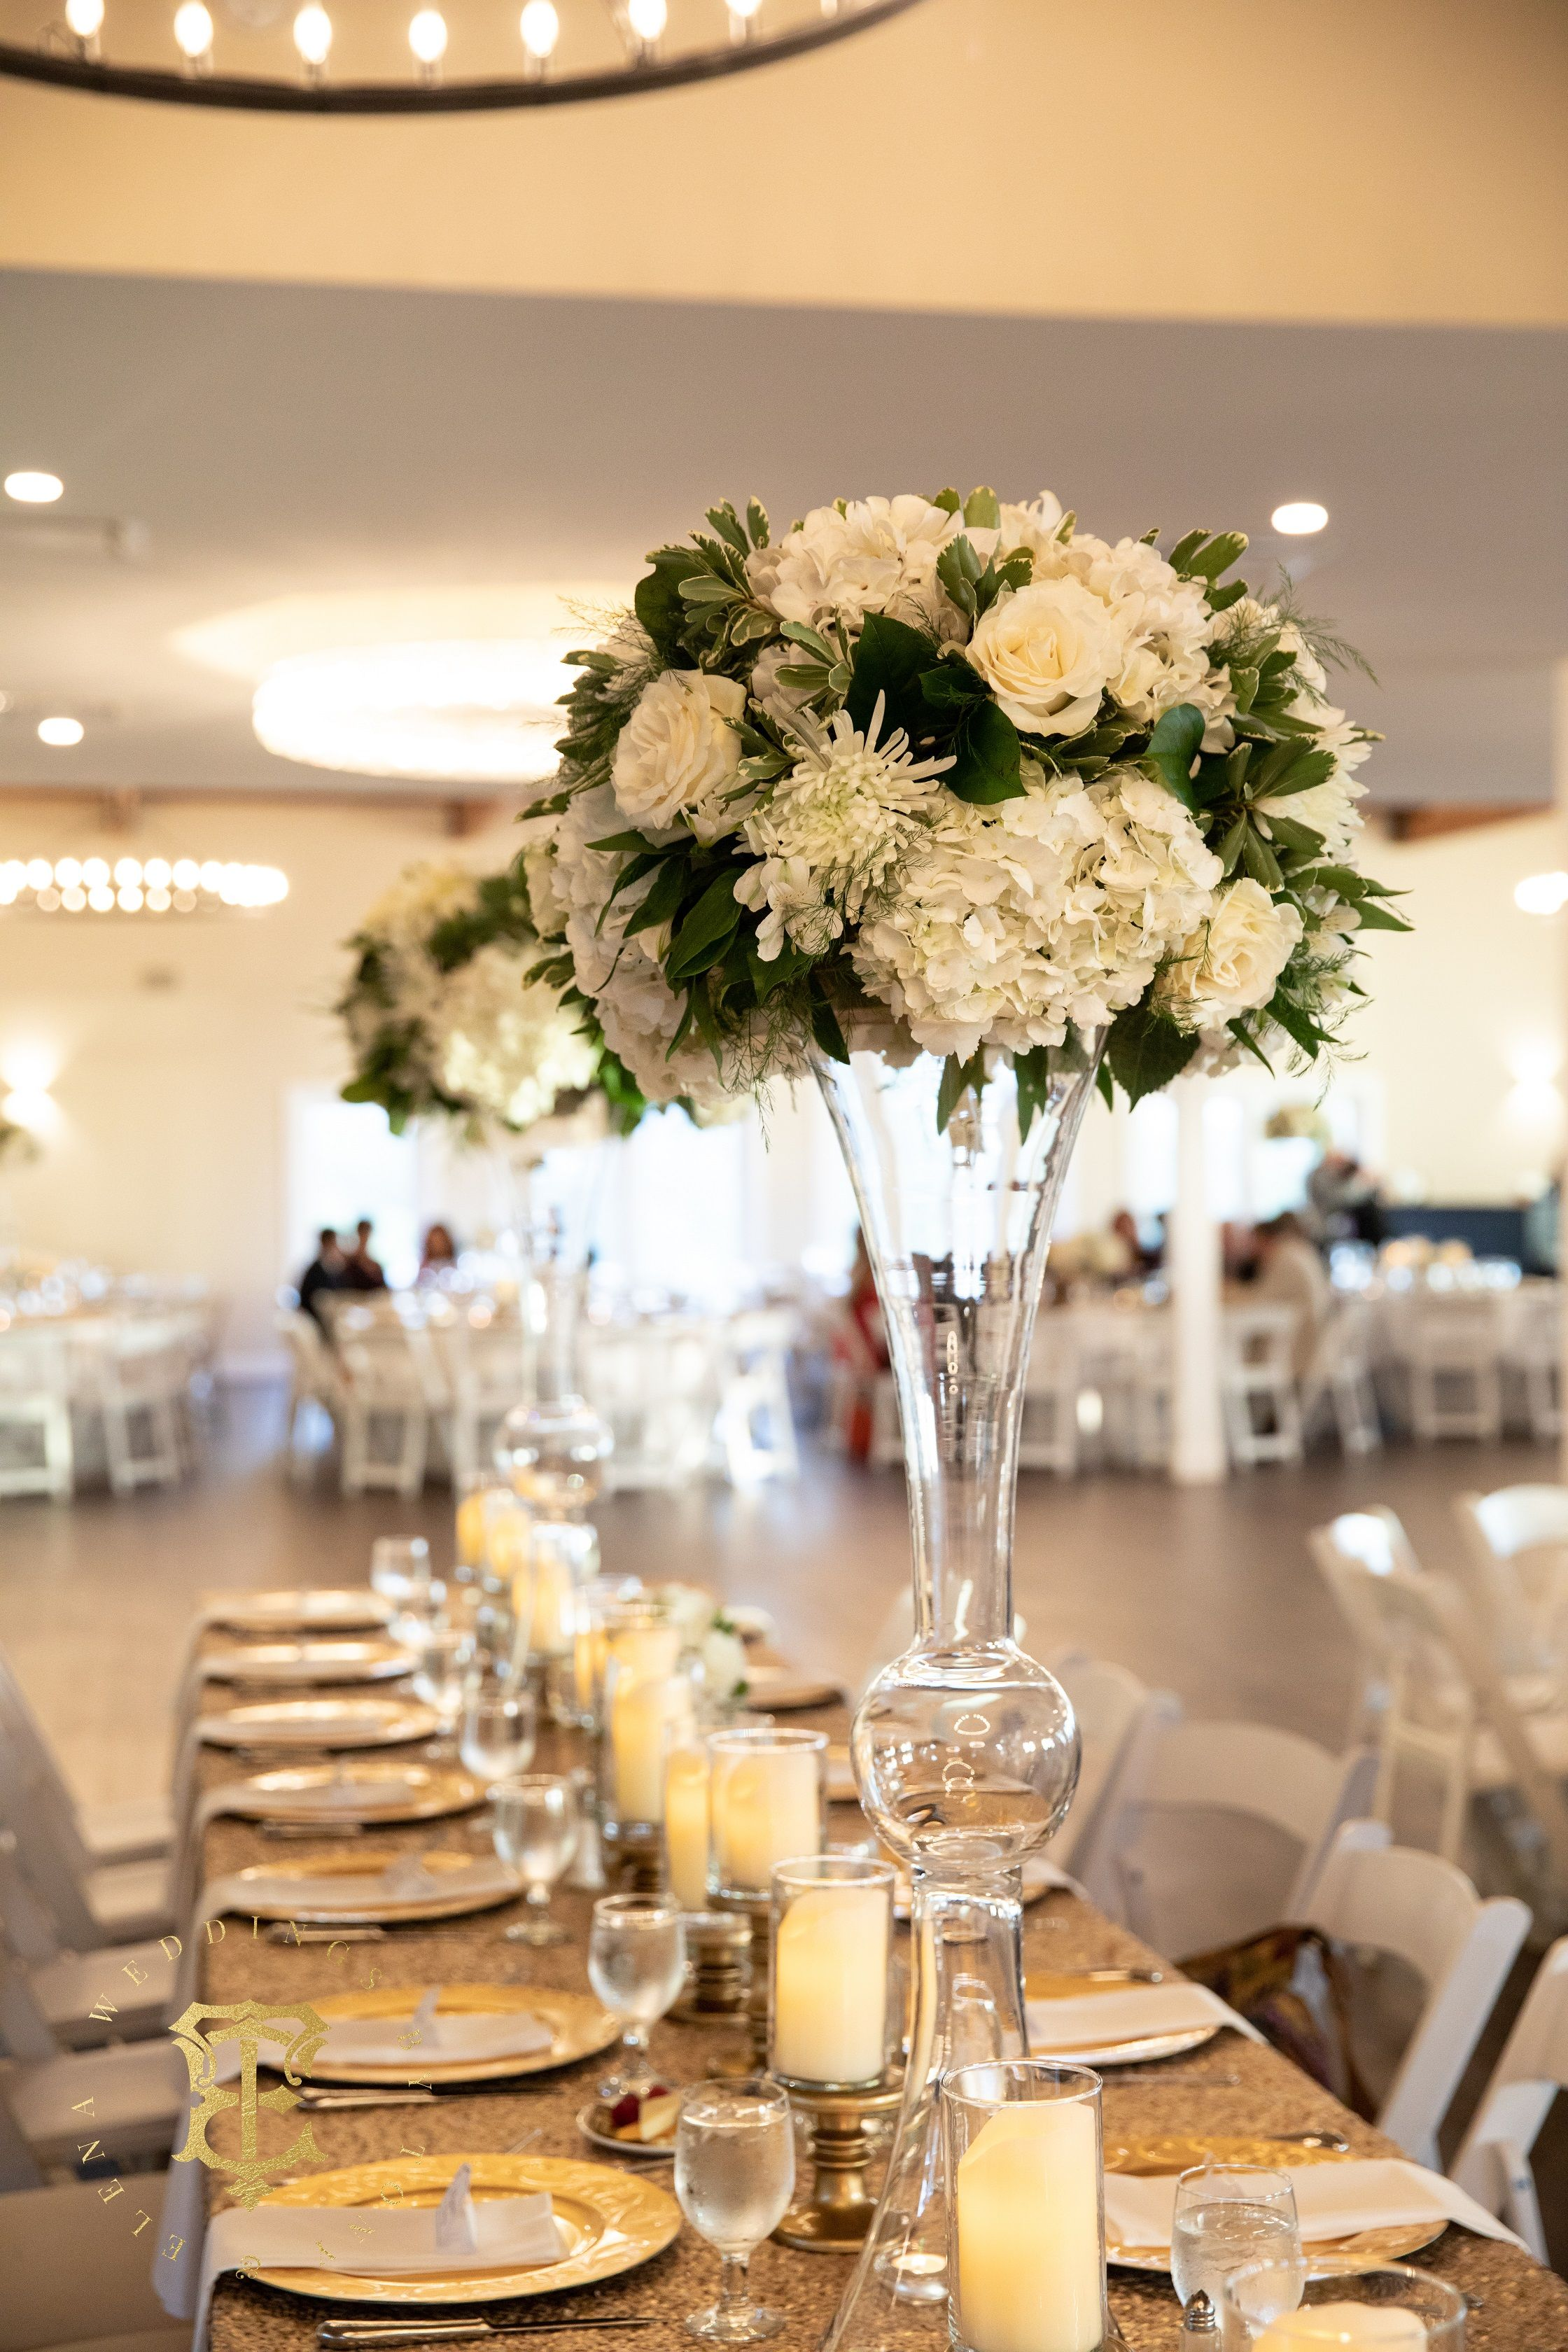 Tall Centerpiece White Flowers And Greenery Tall Centerpieces Centerpieces White Napkins